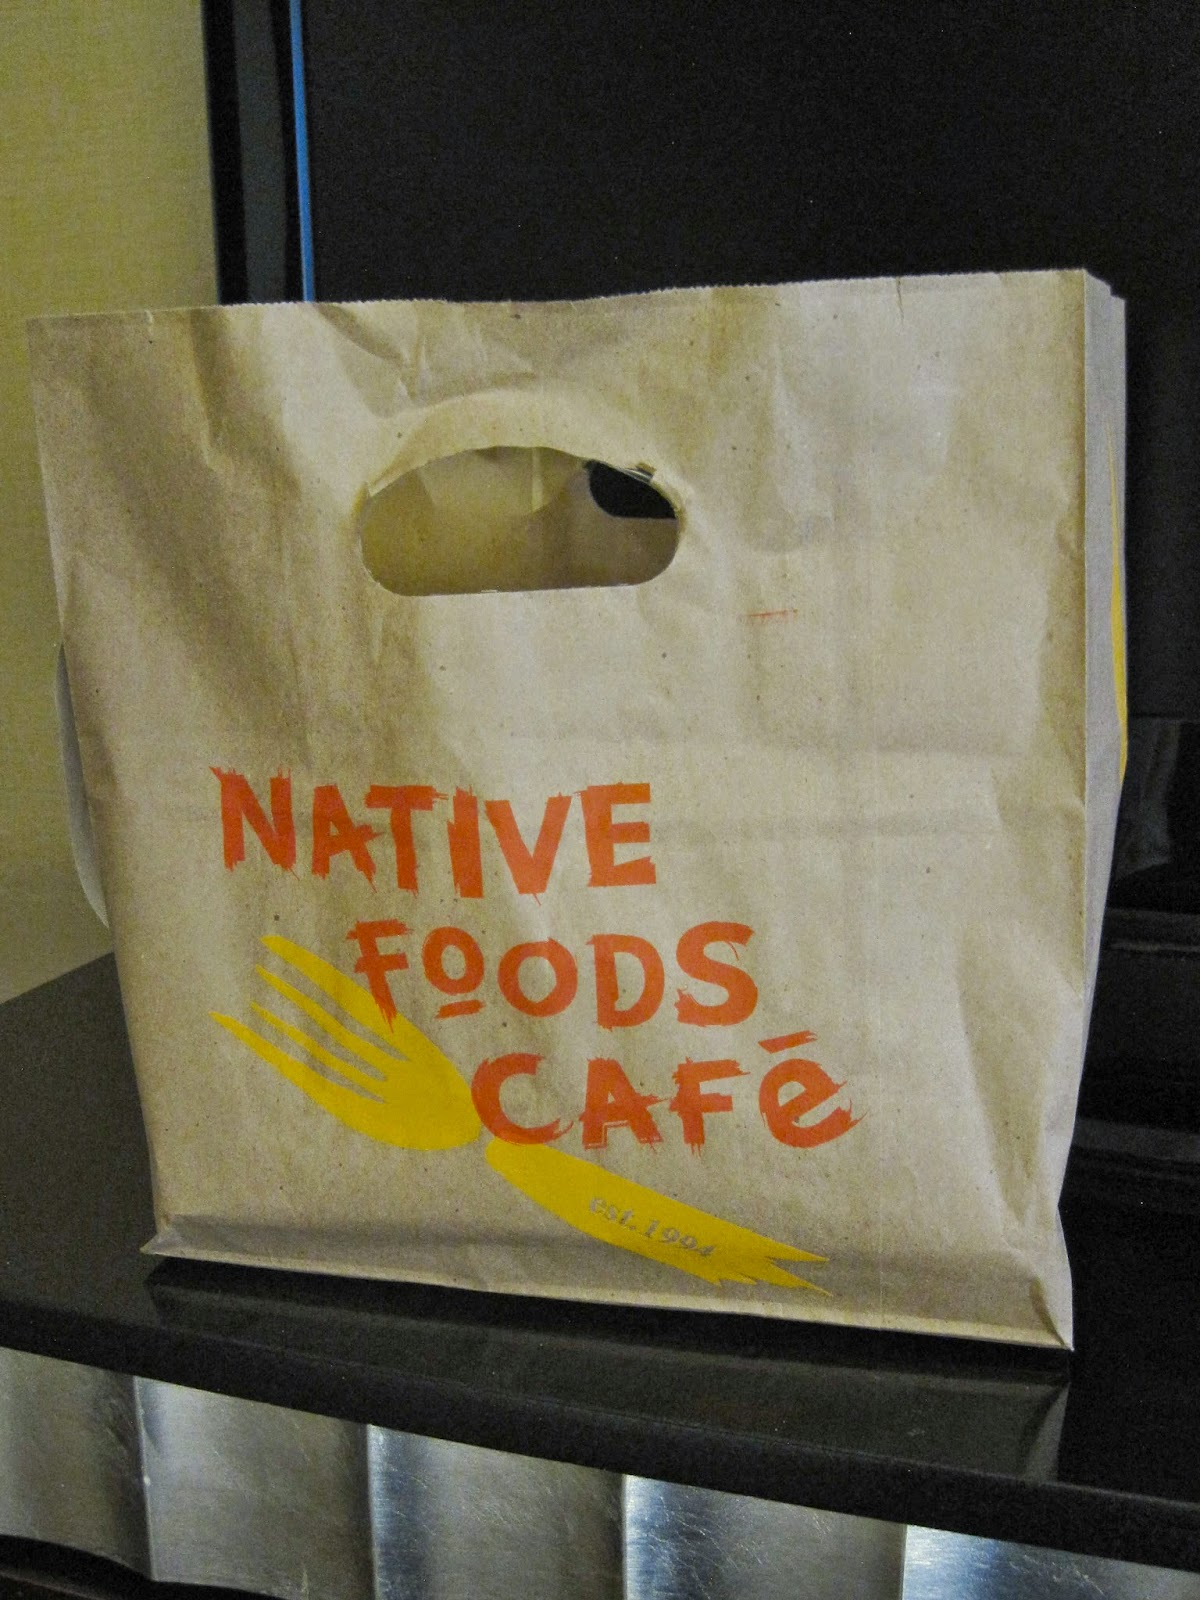 Native Foods Cafe - Vegan Gluten Free Takeout Veega